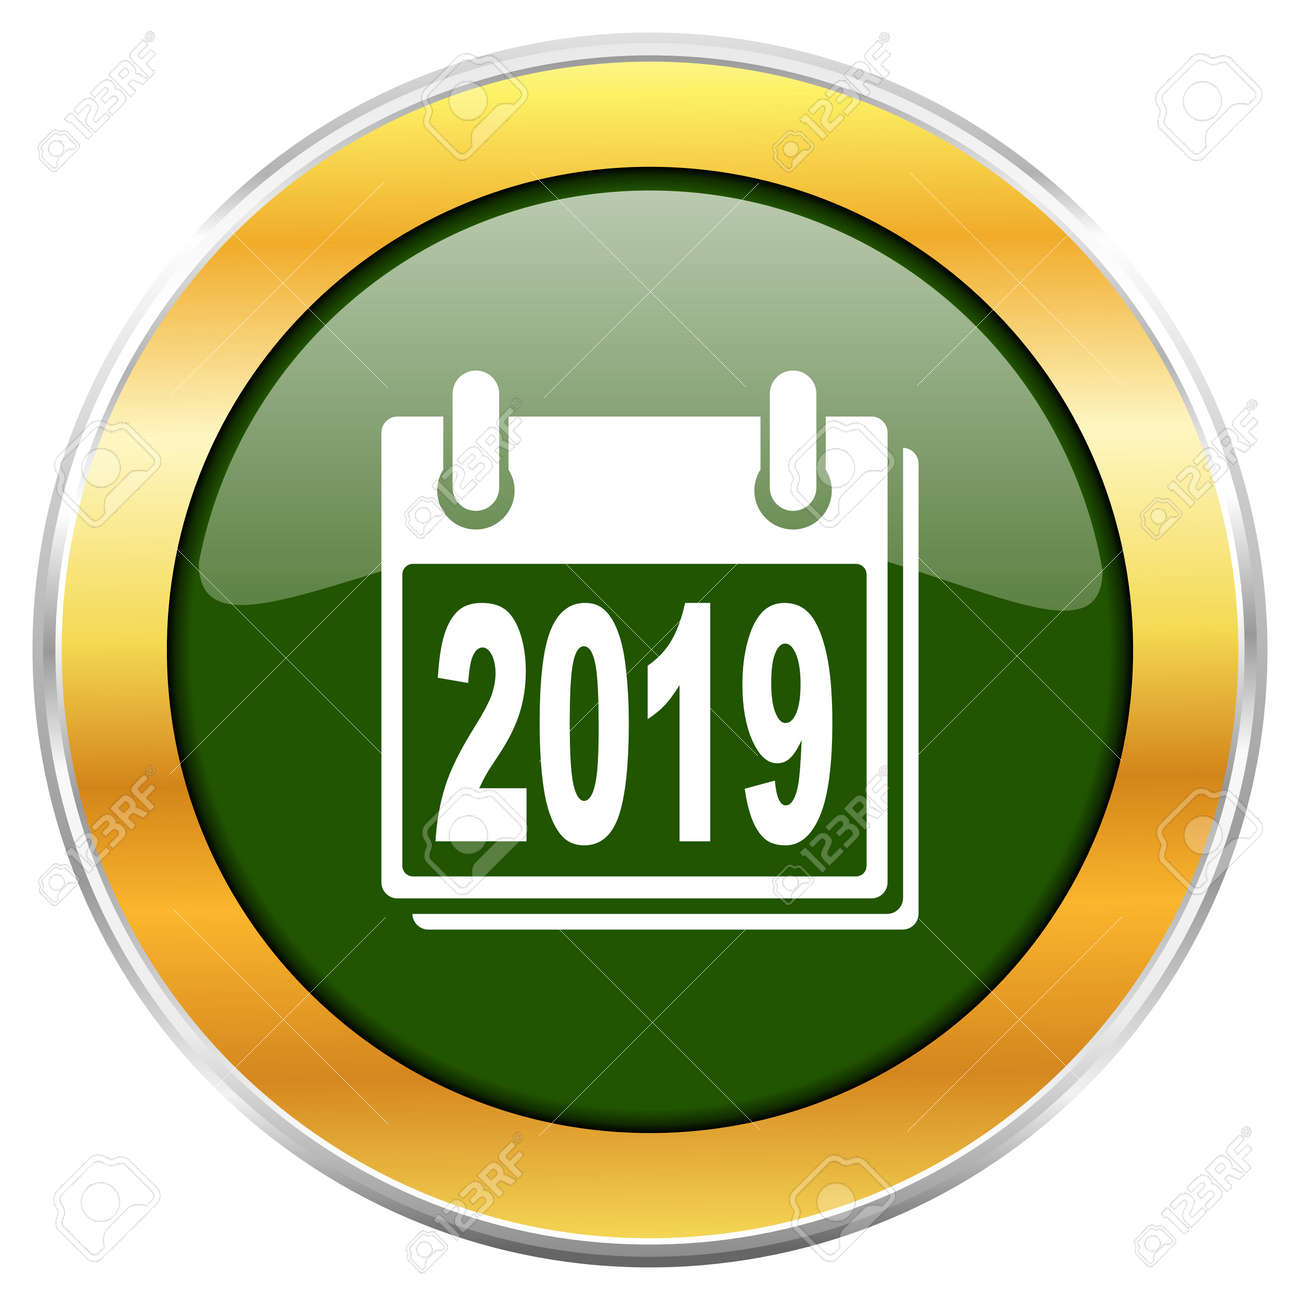 new year 2019 green glossy round icon with golden chrome metallic border isolated on white background